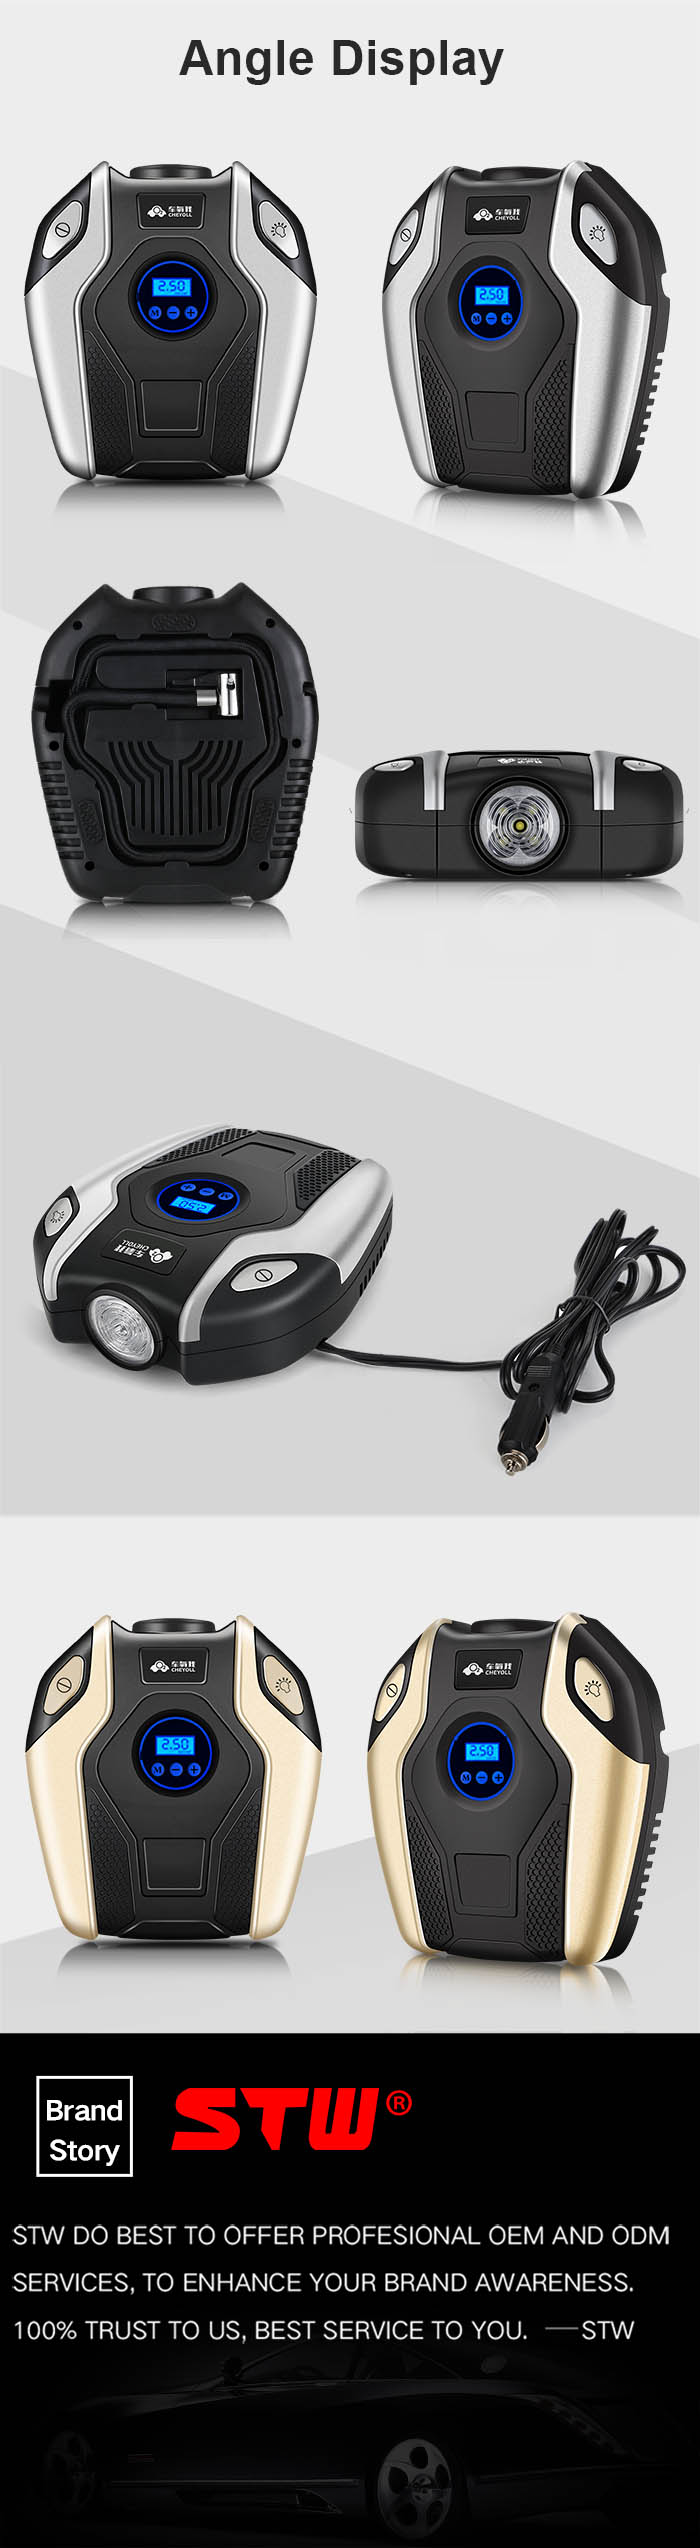 2018 New Portable 12V Electric Automatic Digital Car Air Compressor Pump Tire Inflator with Pressure Gauge